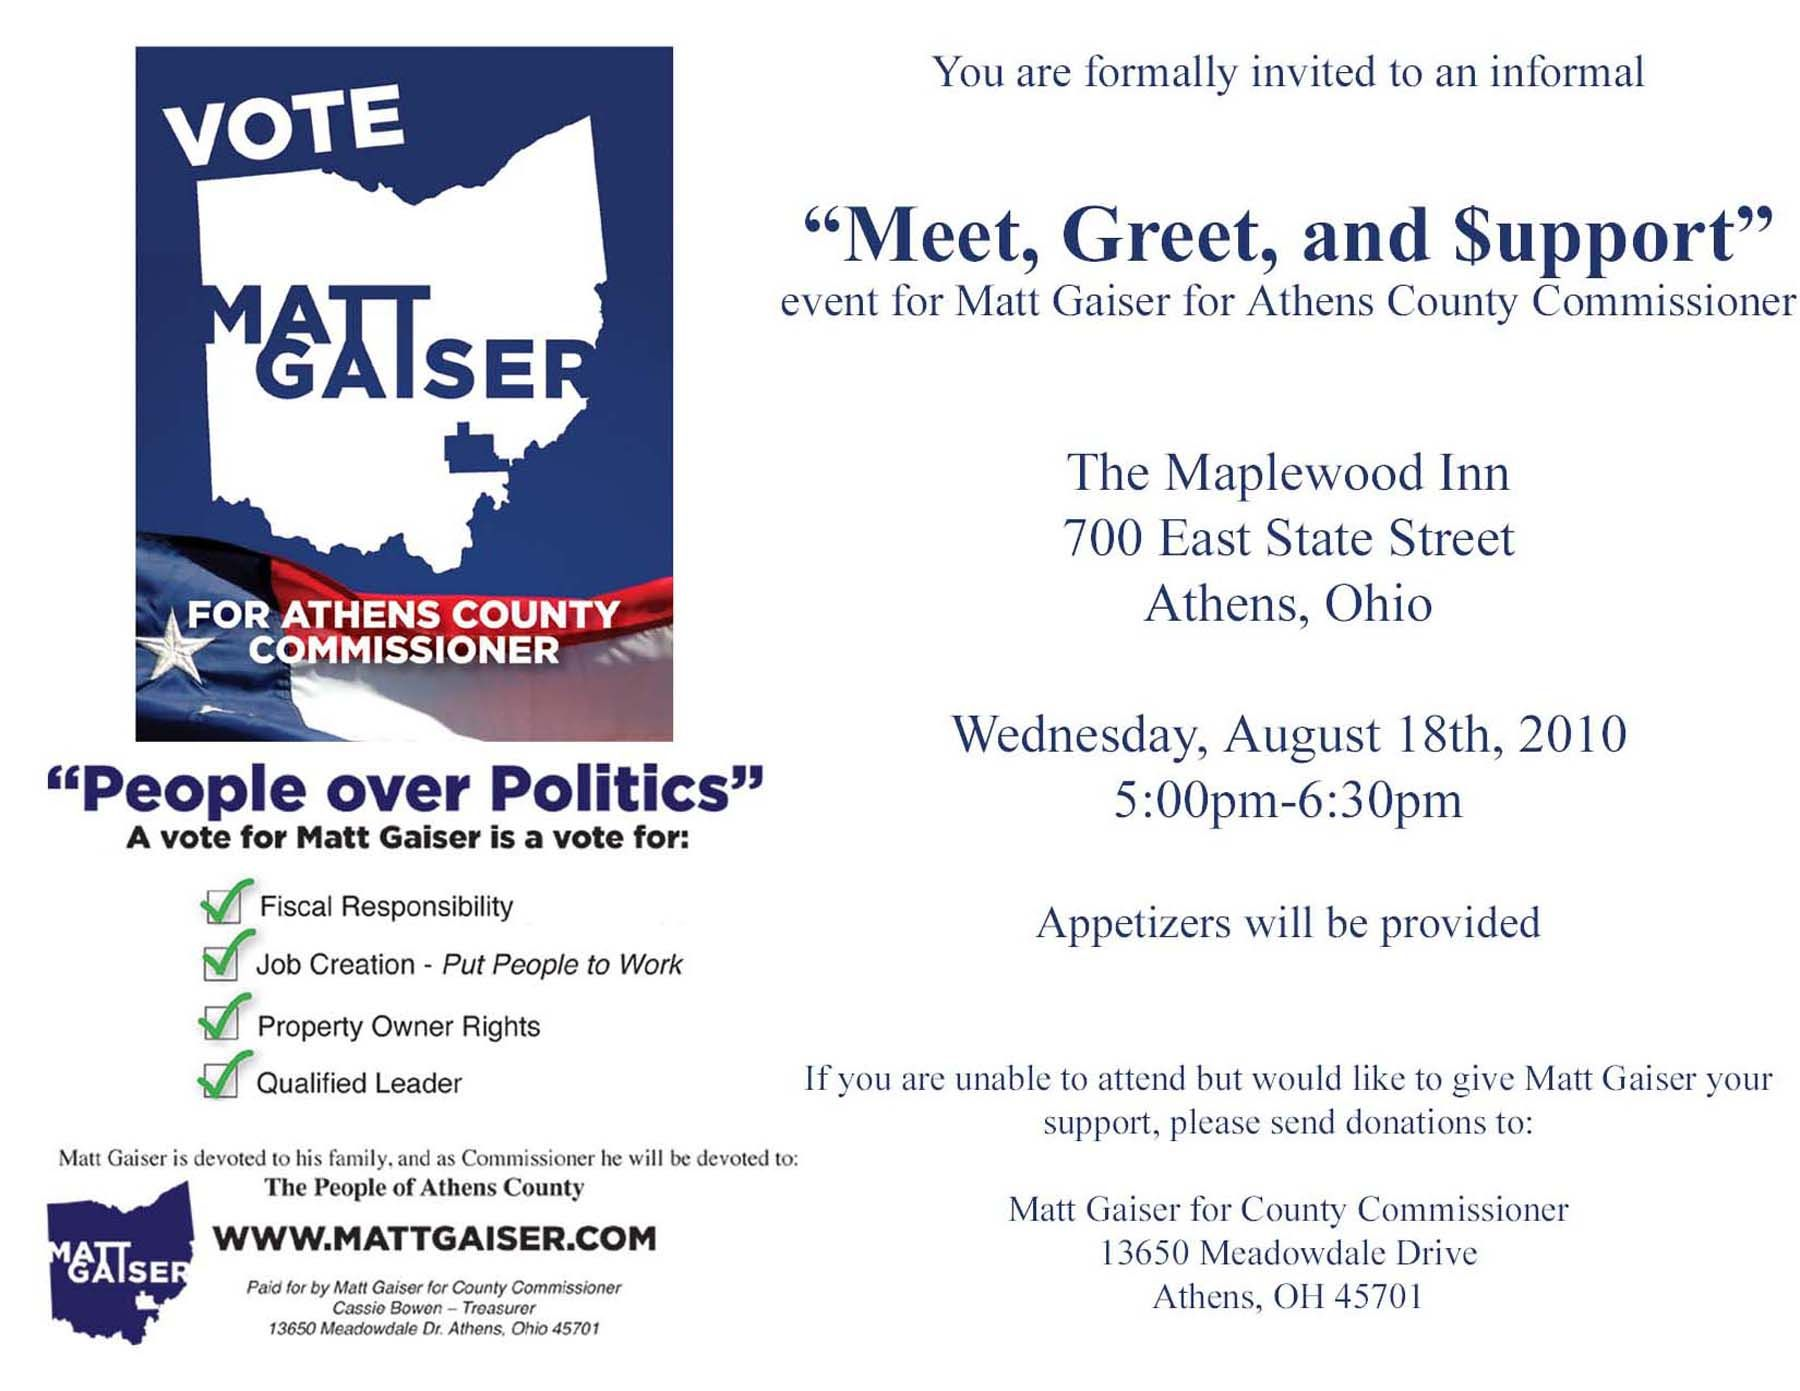 Political Fundraiser Invitations | Meet, Greet And $upport | Matt Gaiser  For Athens County  Fundraising Invitation Samples